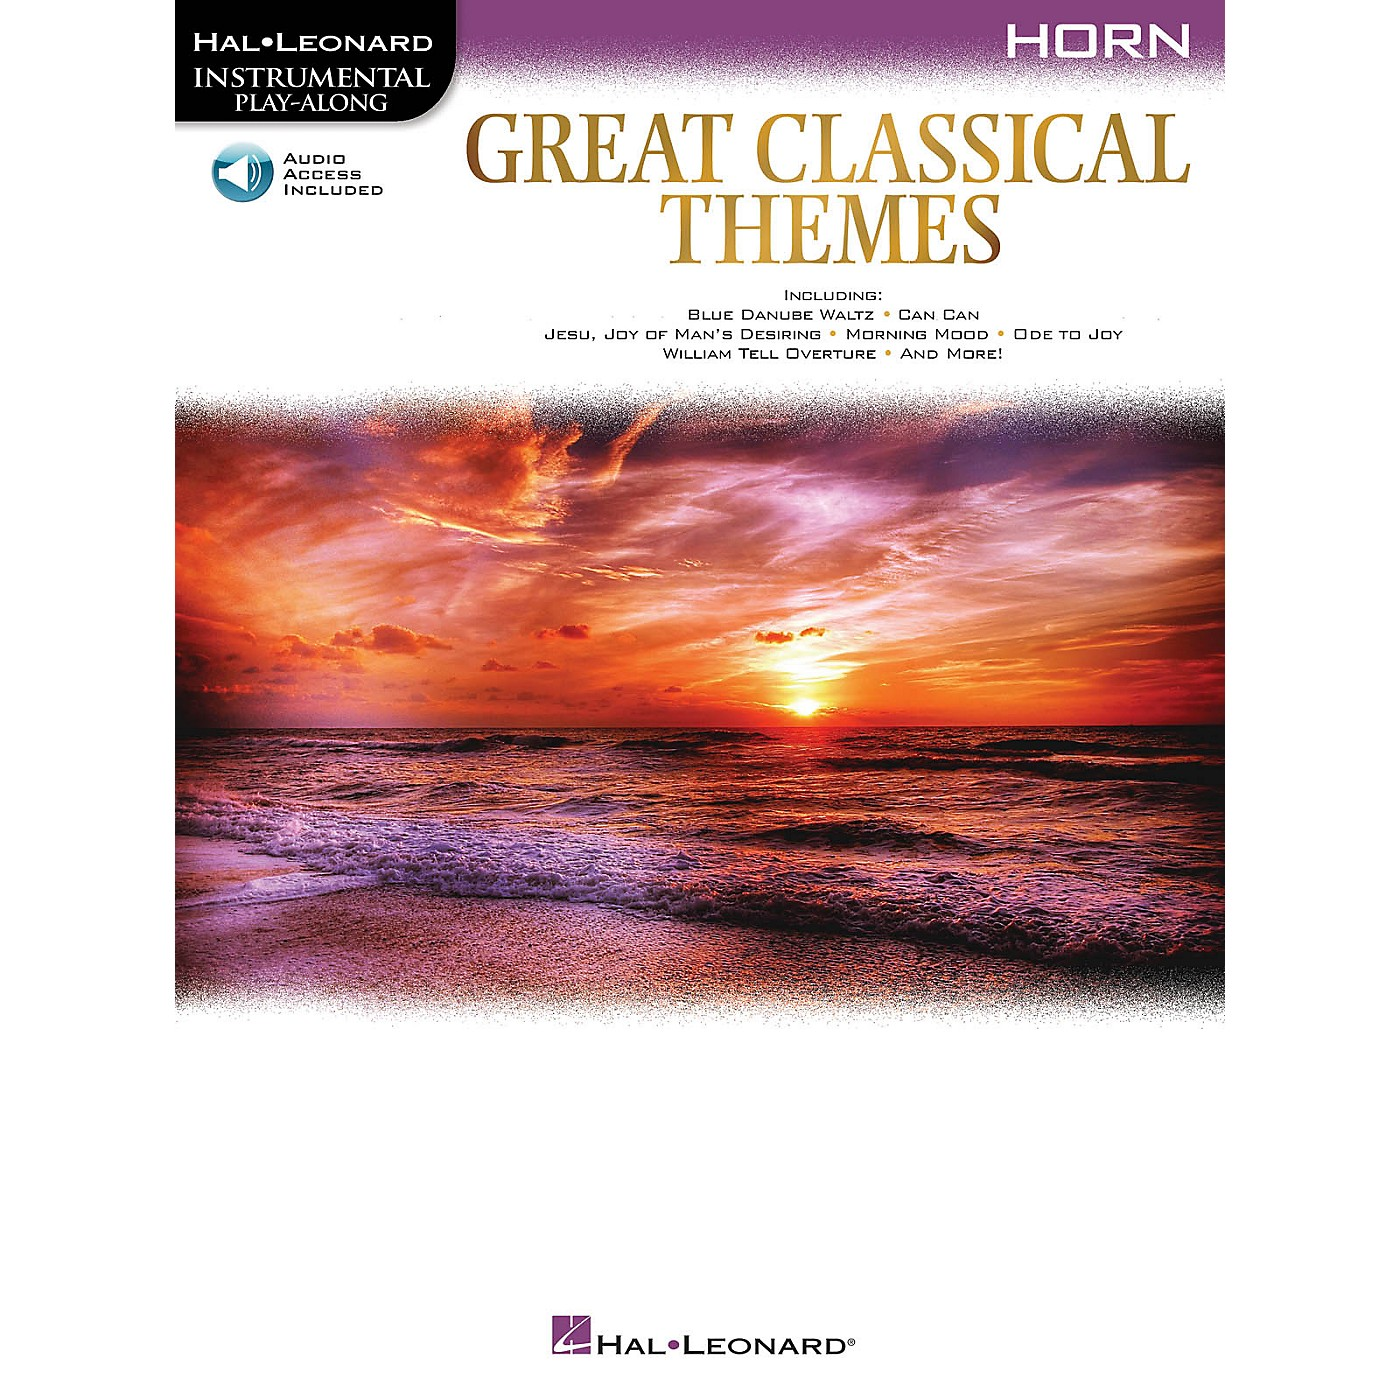 Hal Leonard Great Classical Themes for Horn Instrumental Play-Along Book/Audio Online thumbnail